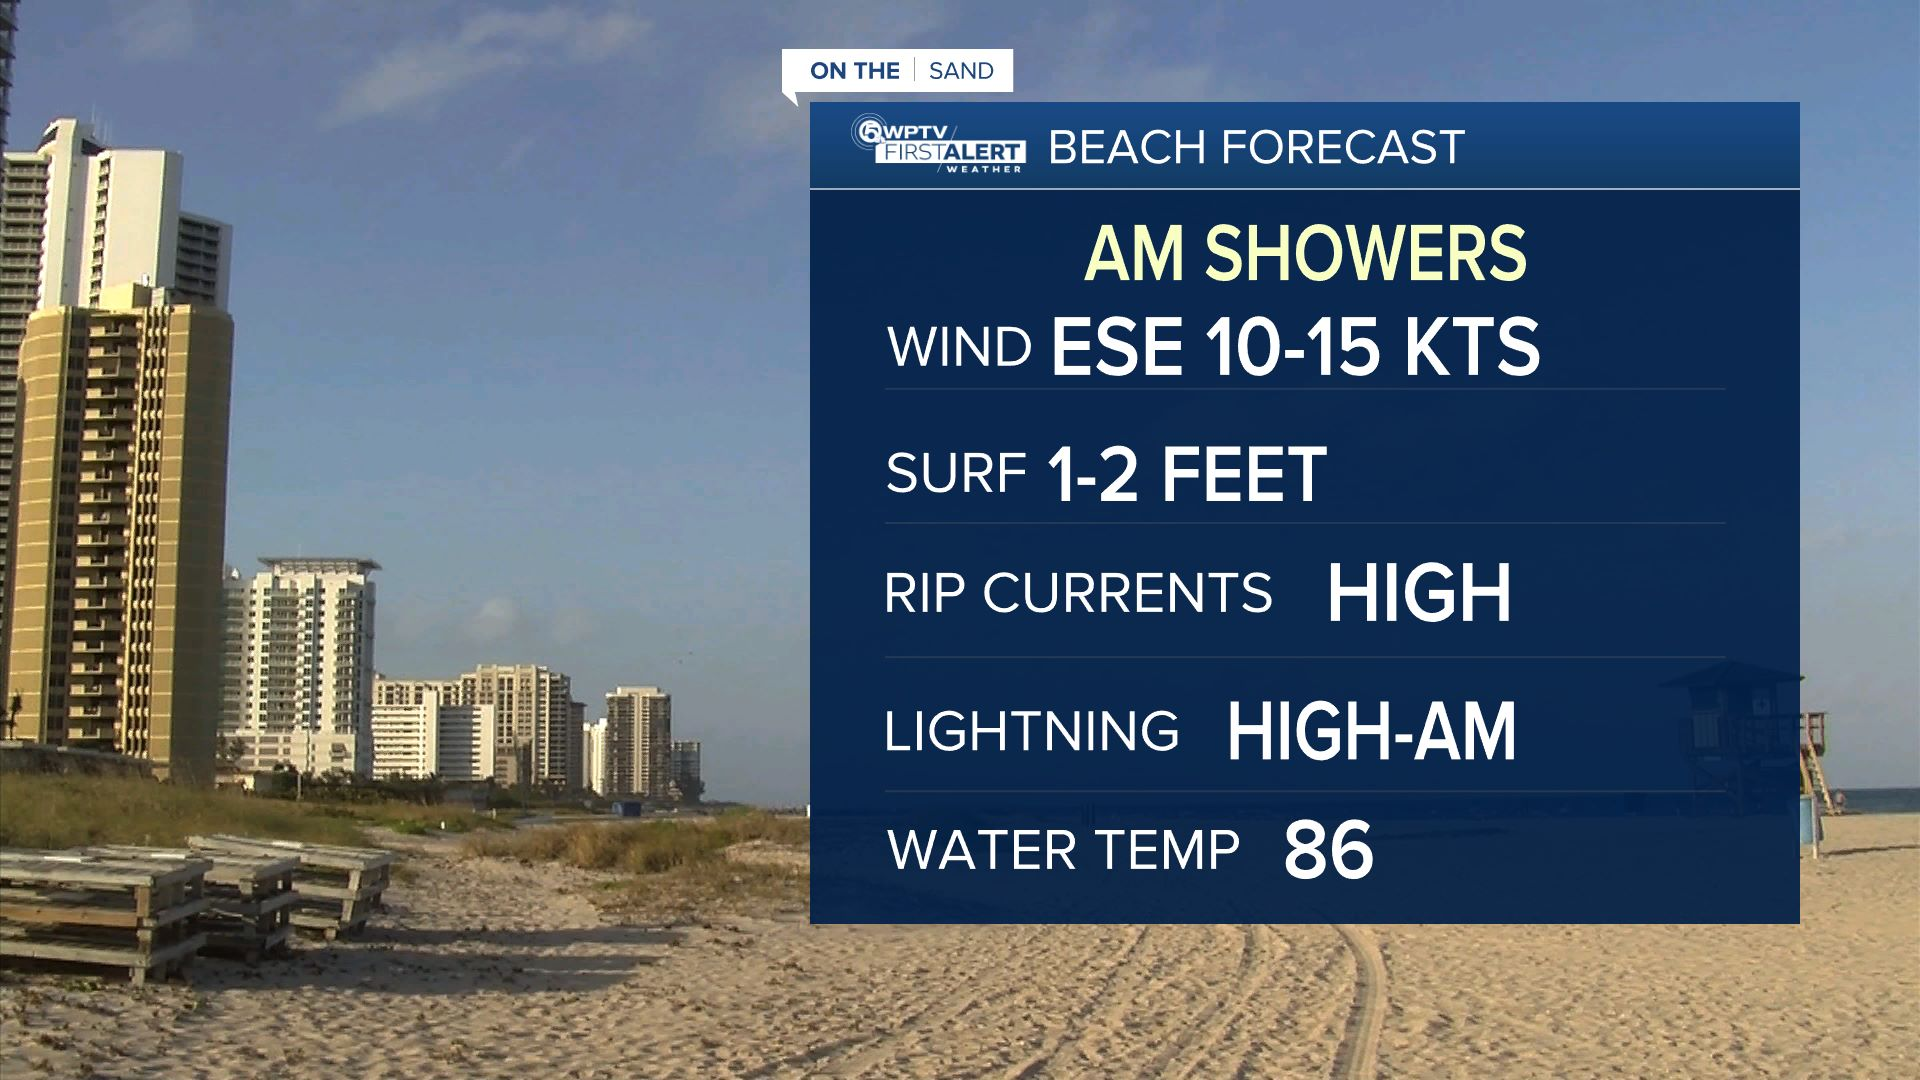 Palm Beach Surf Forecast, Updated local surf forecast for SE